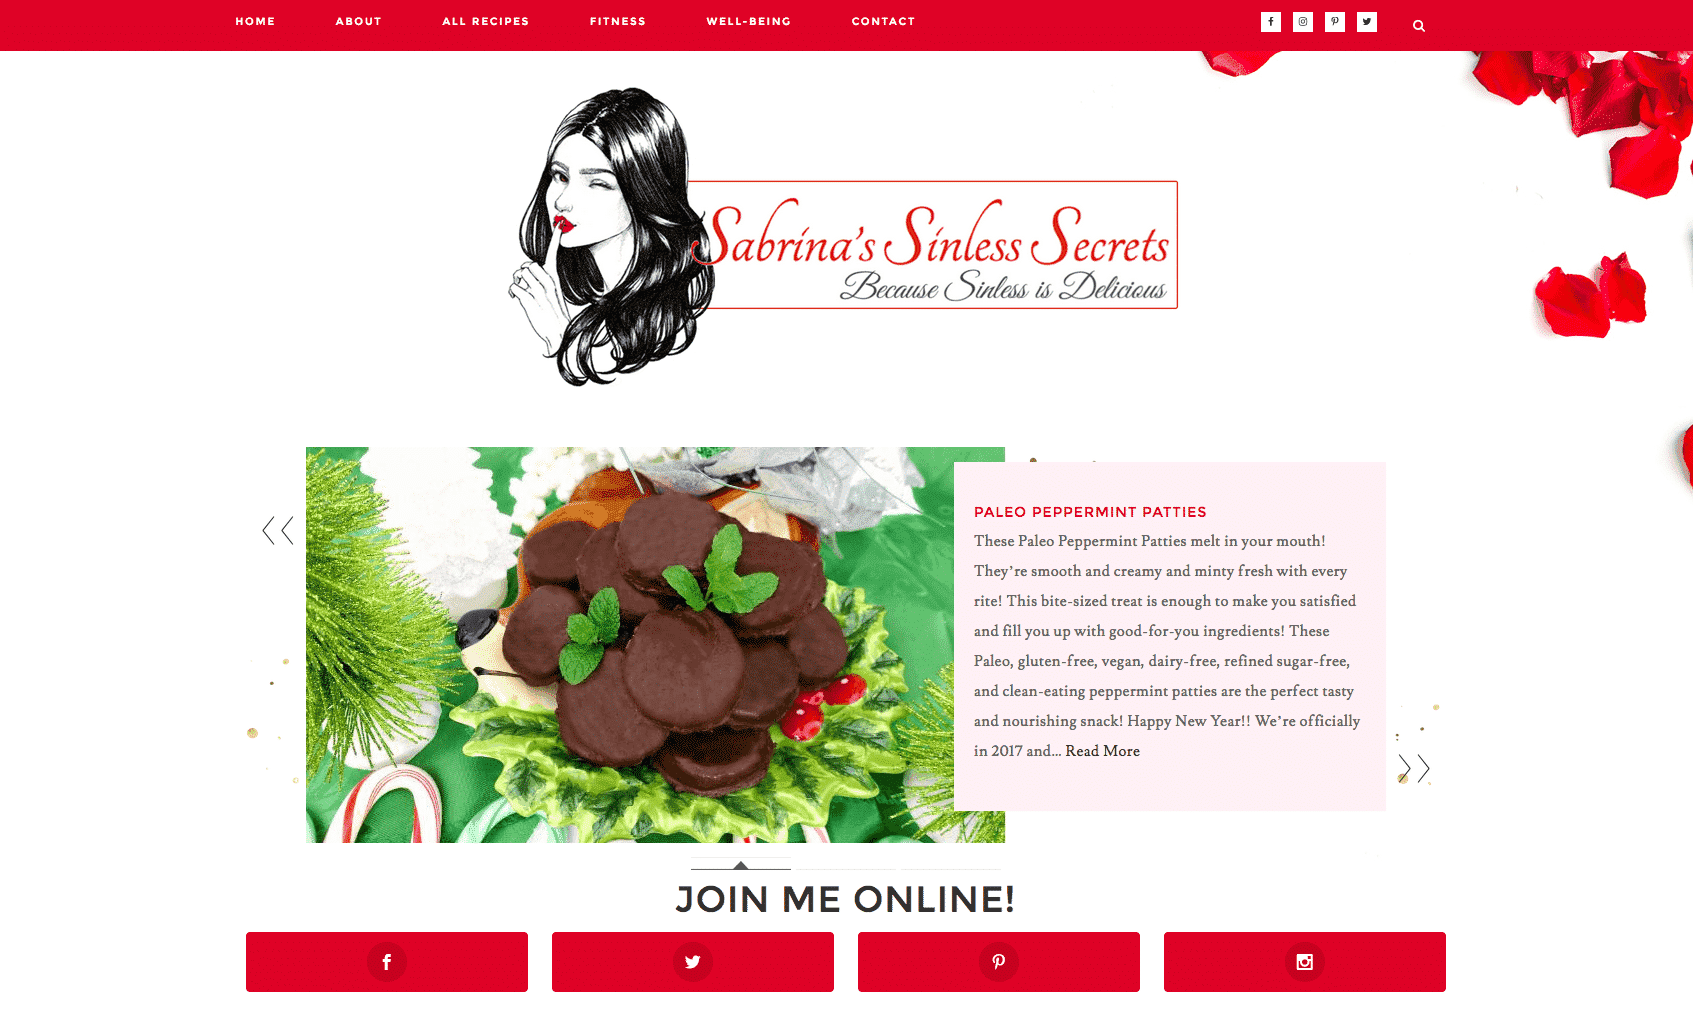 Recipe Blog Web Design Example of Sabrina's Sinless Secrets